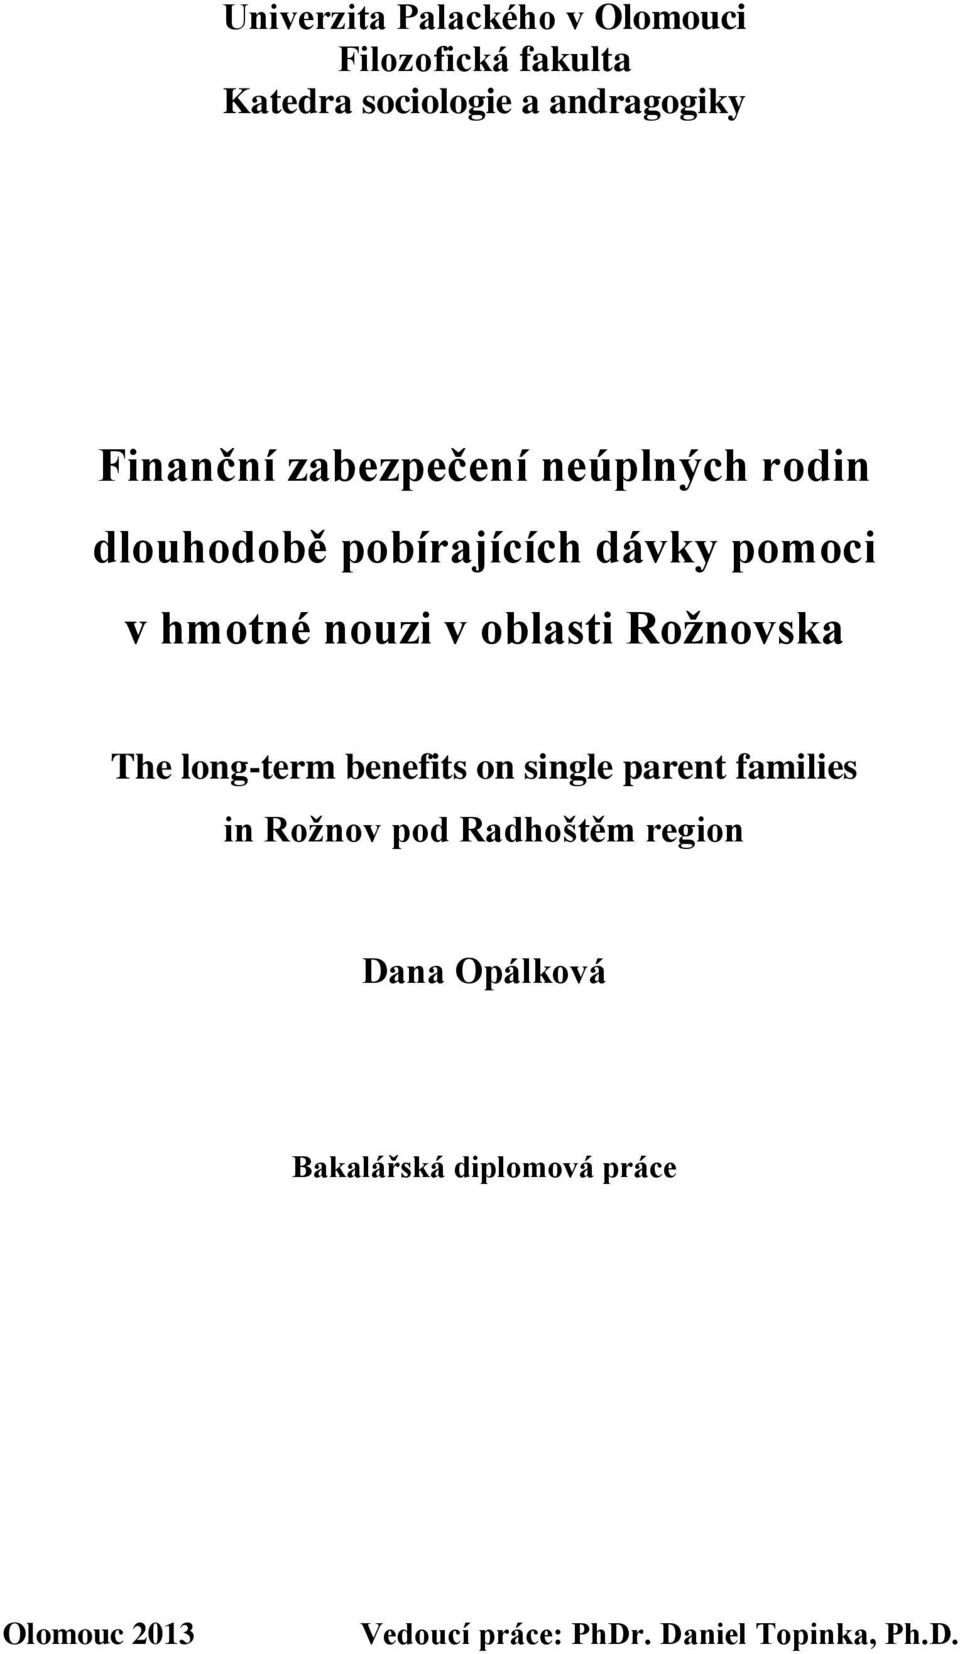 oblasti Rožnovska The long-term benefits on single parent families in Rožnov pod Radhoštěm